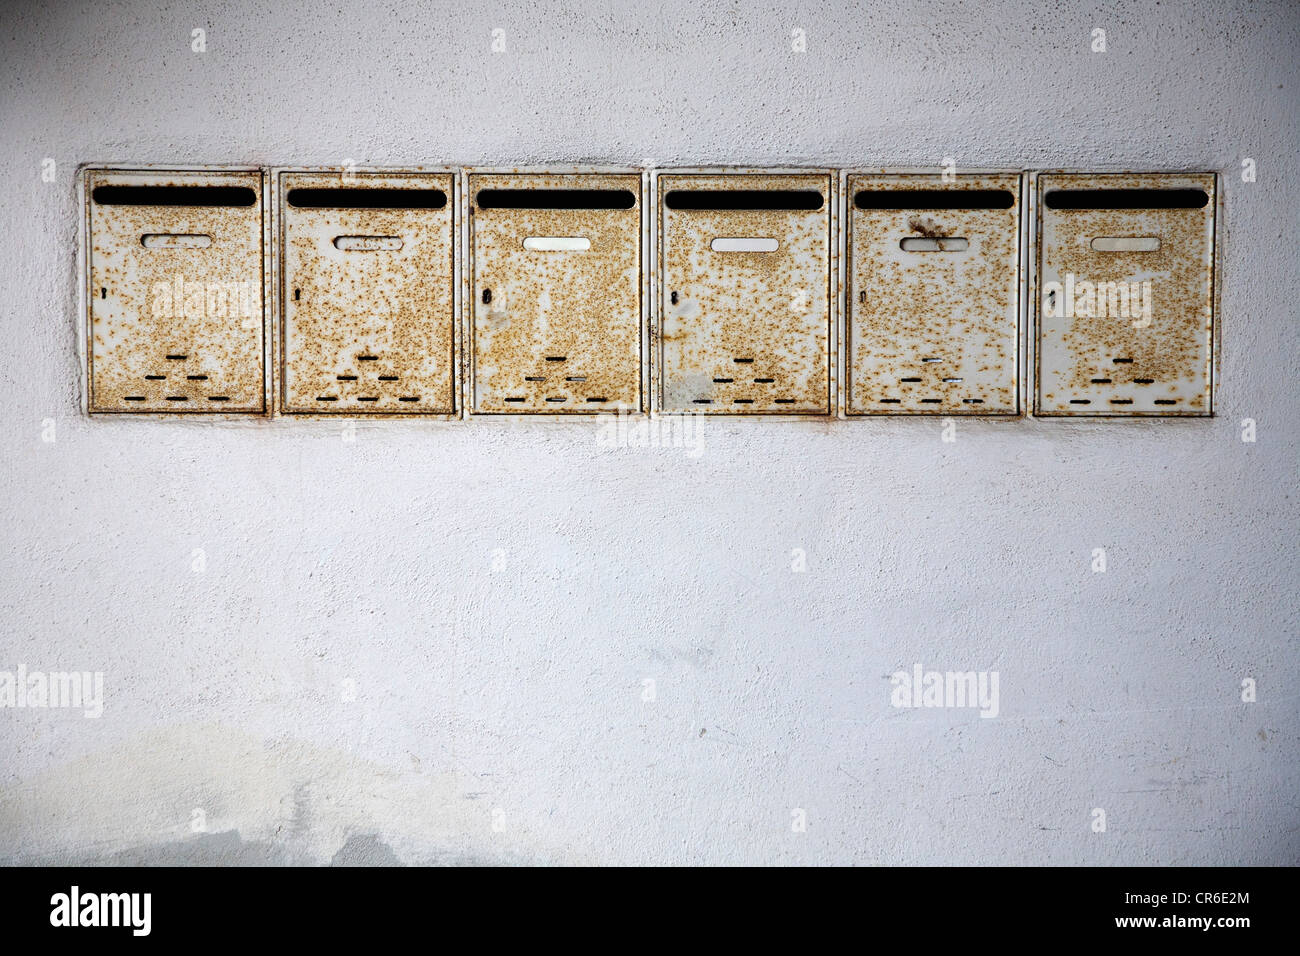 Germany, Bavaria, Wuerzburg, Row of old rusty mailboxes - Stock Image